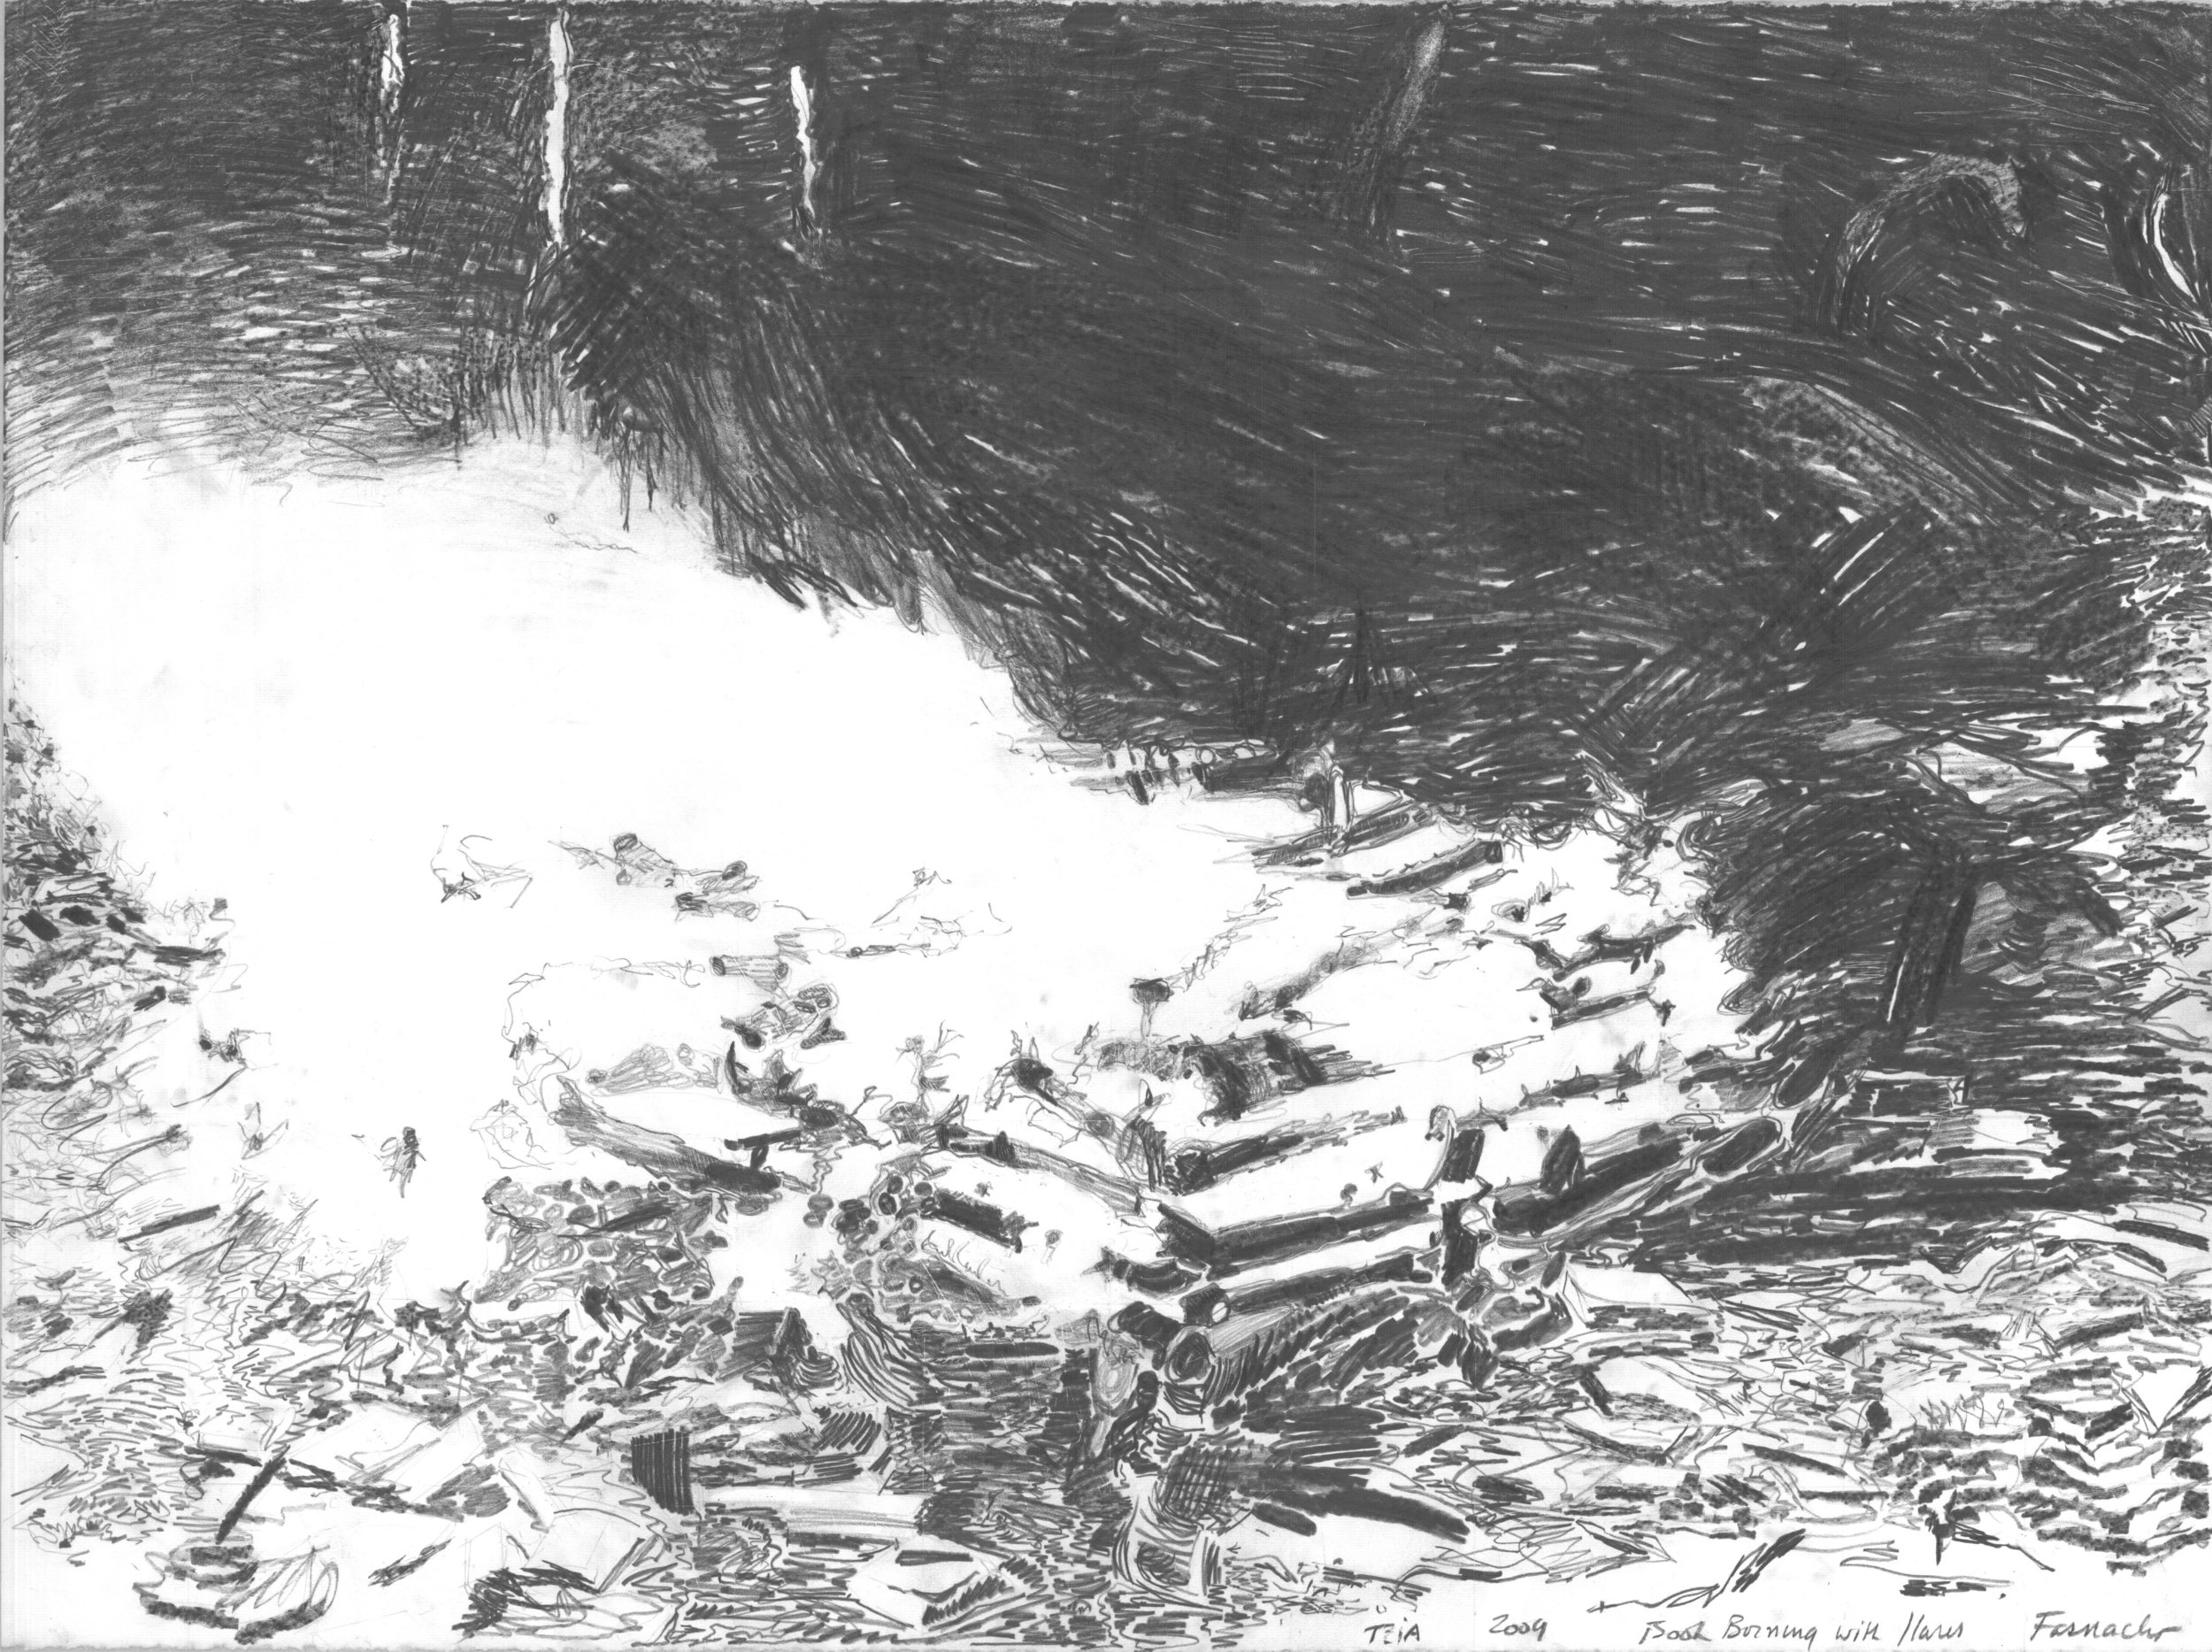 Book Burning I,  2009, Graphite on paper, 22 x 30 inches